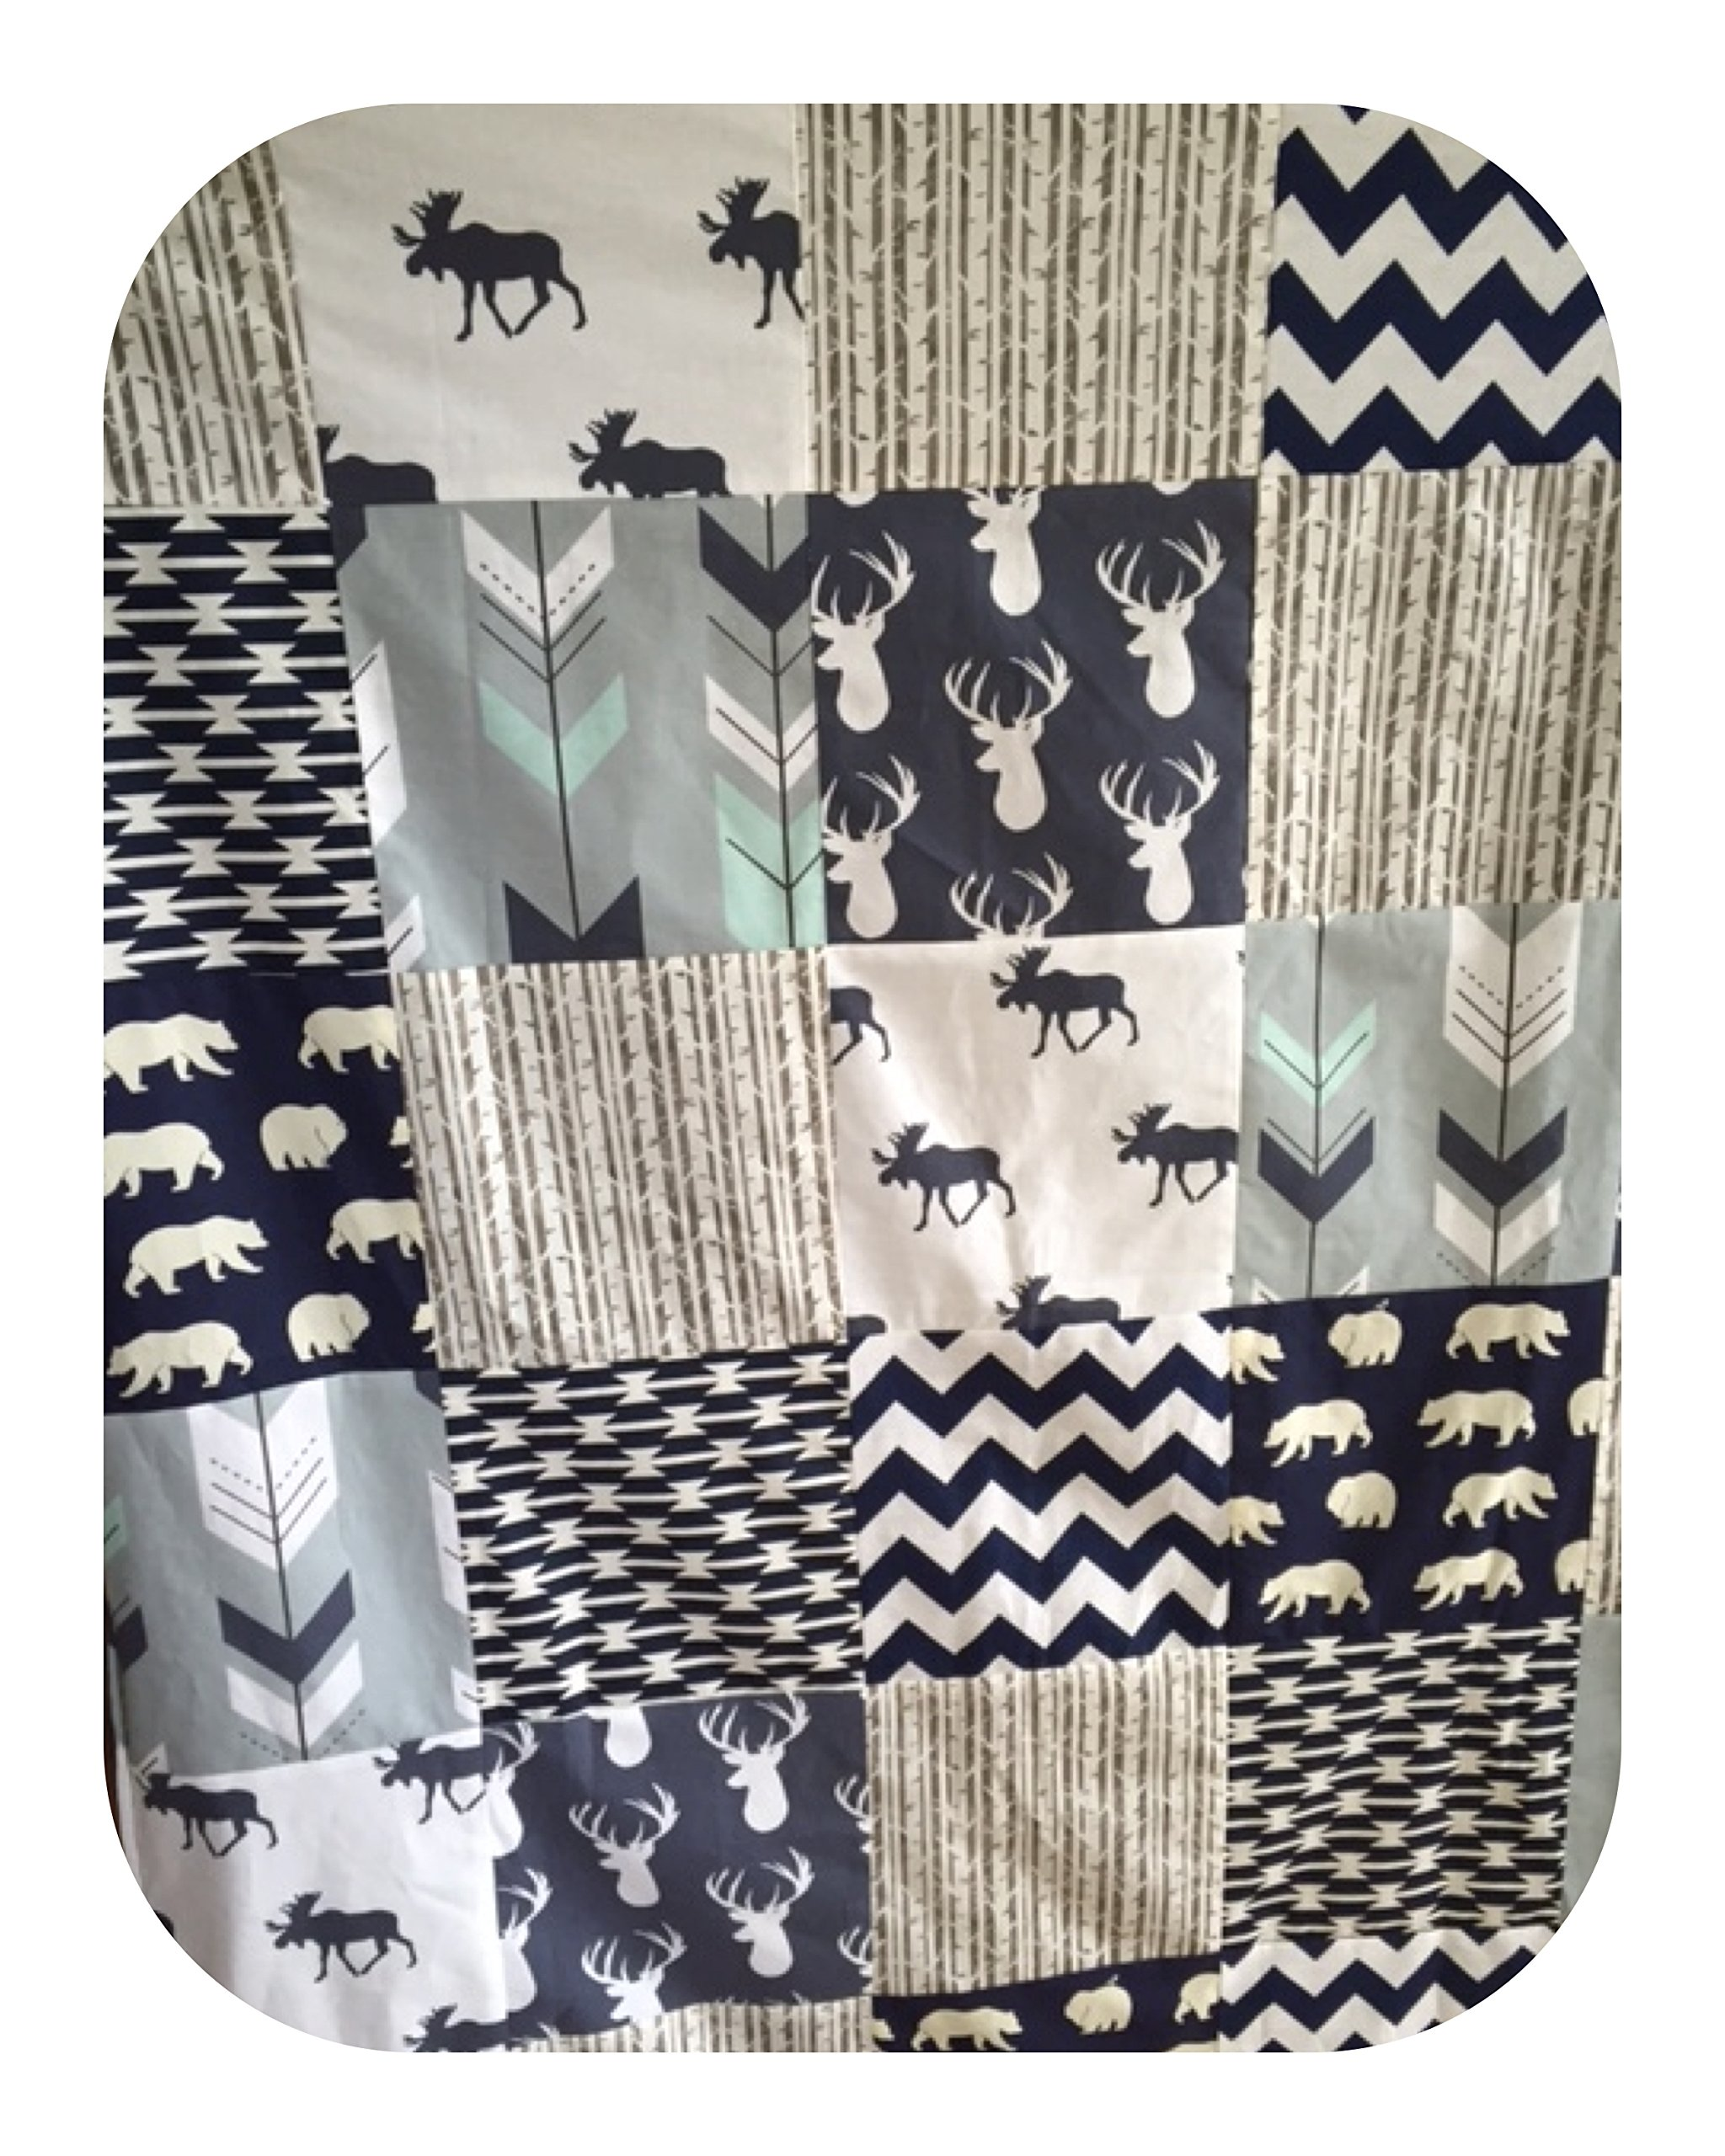 Moose and Tomahawk Boy Crib Patchwork Blanket in Mint, Gray and Navy by Cobalt and Coral